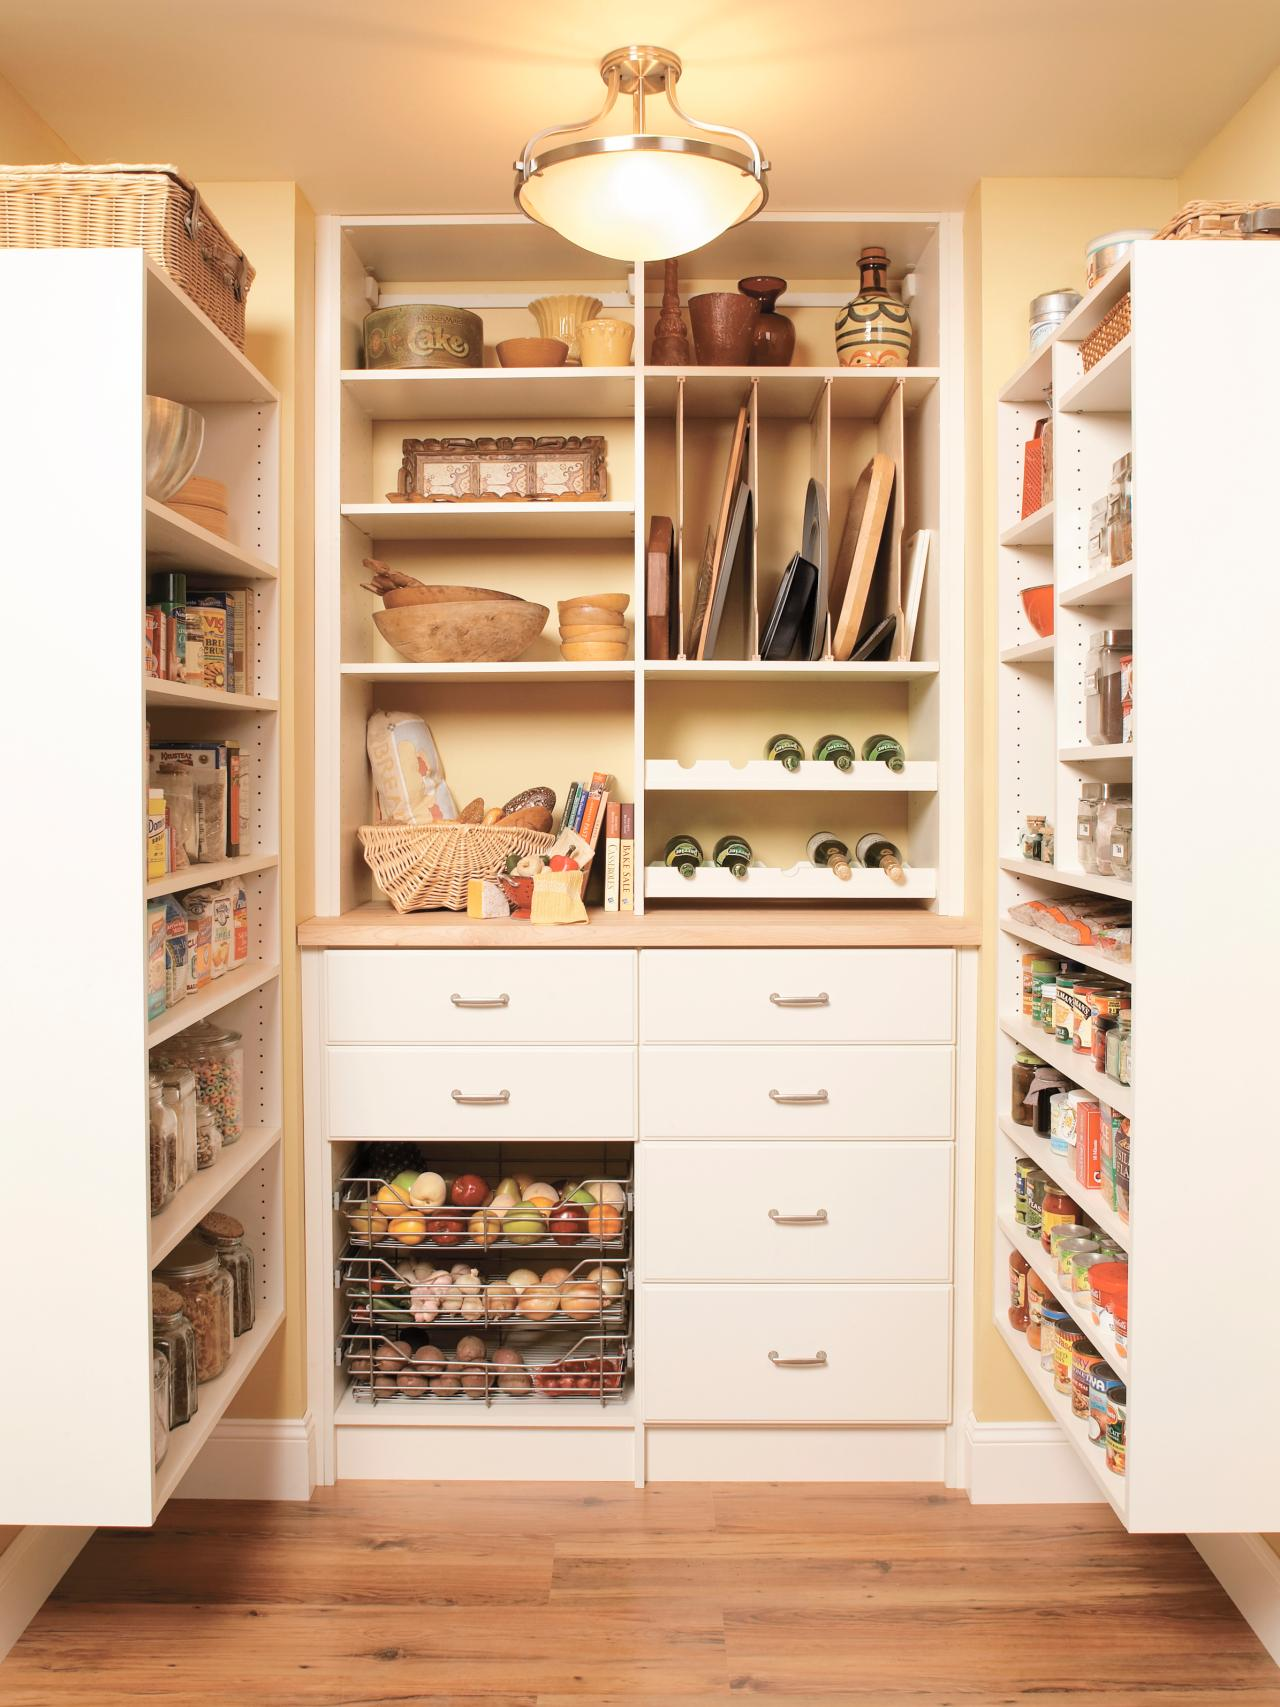 51 pictures of kitchen pantry designs ideas for Kitchen closet ideas